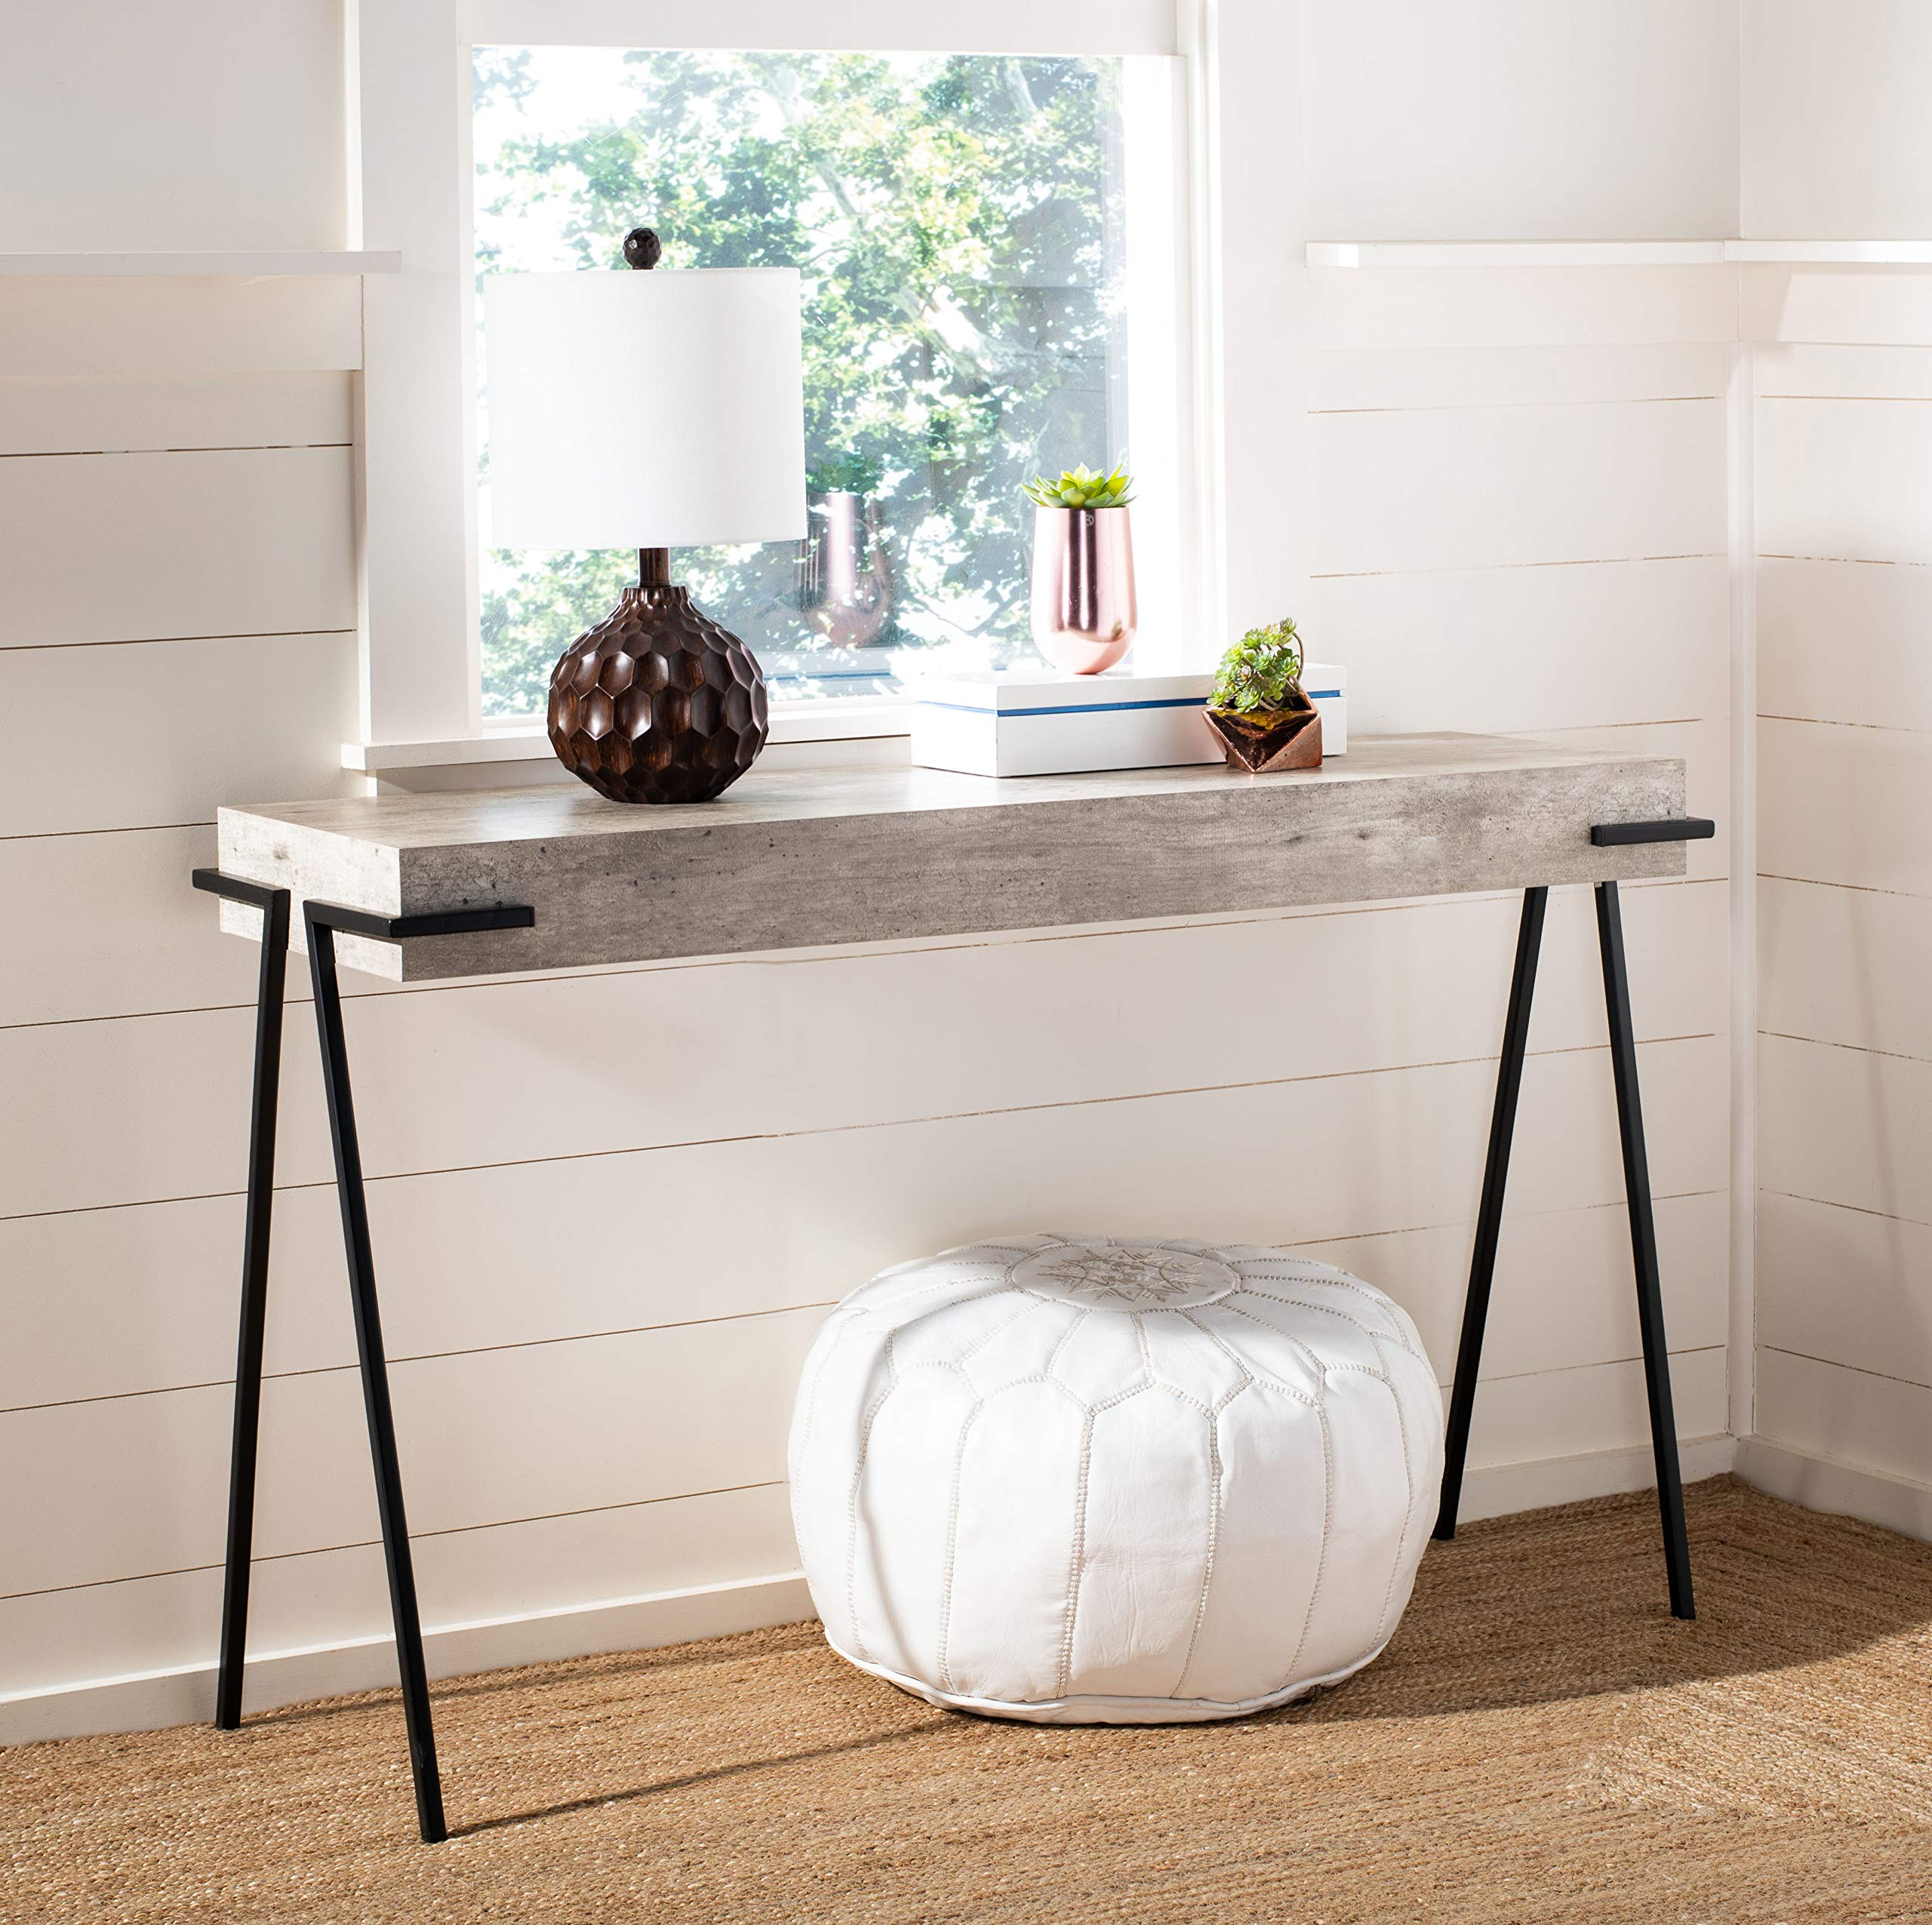 Safavieh Home Jett Modern Industrial Light Grey and Black Rectangle Console Table, gray by Safavieh